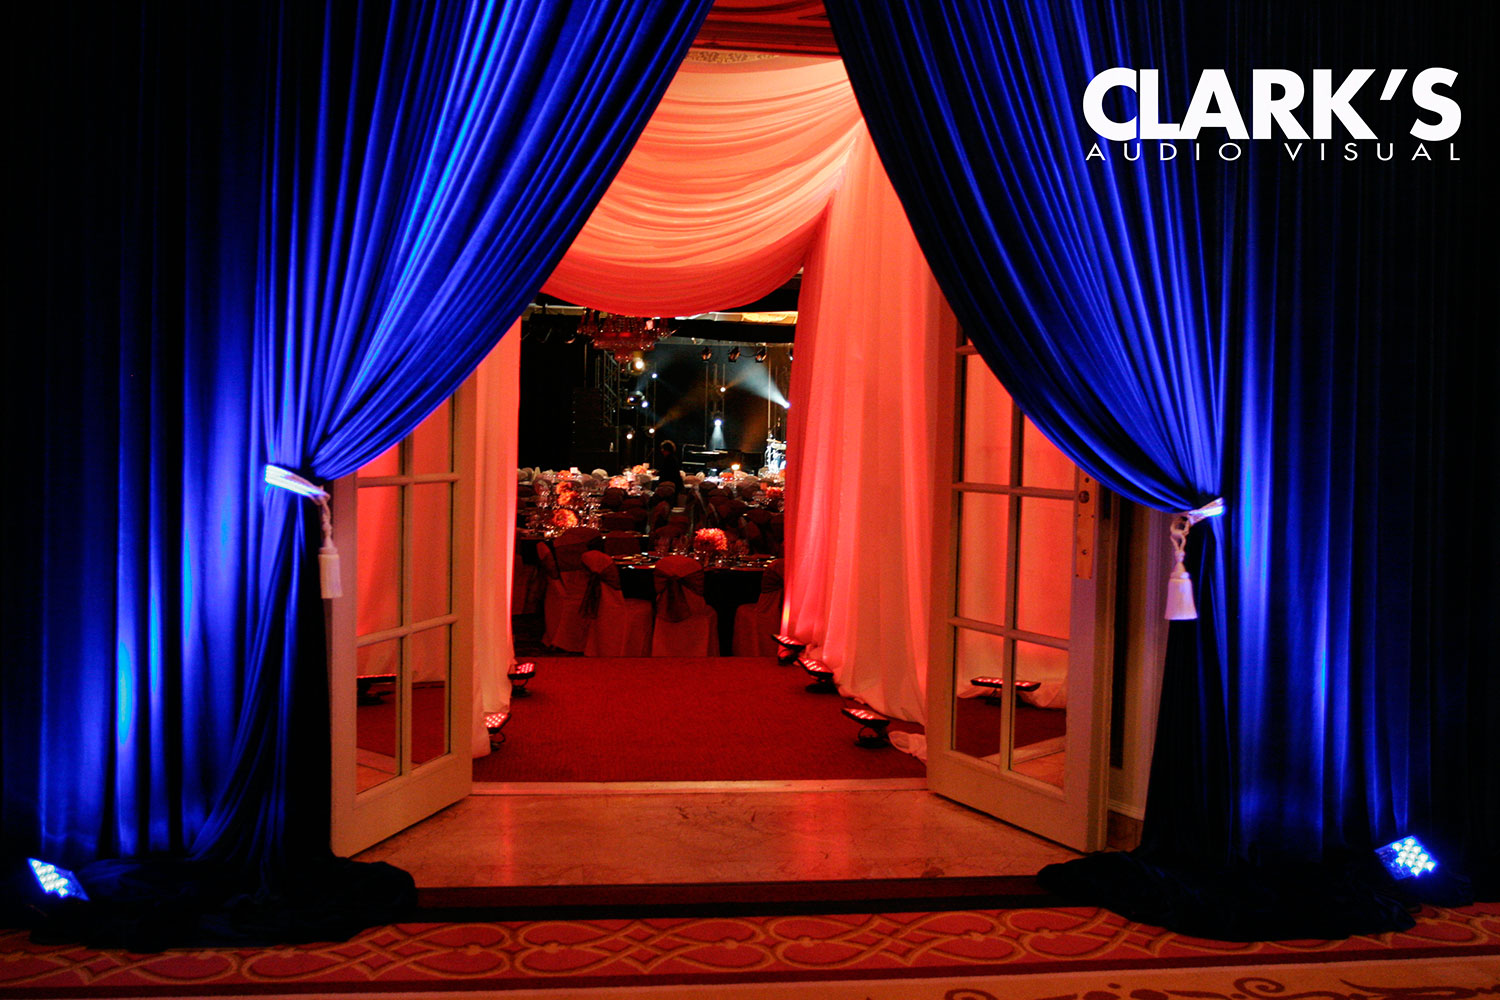 Clark's Audio Visual Draping Rentals